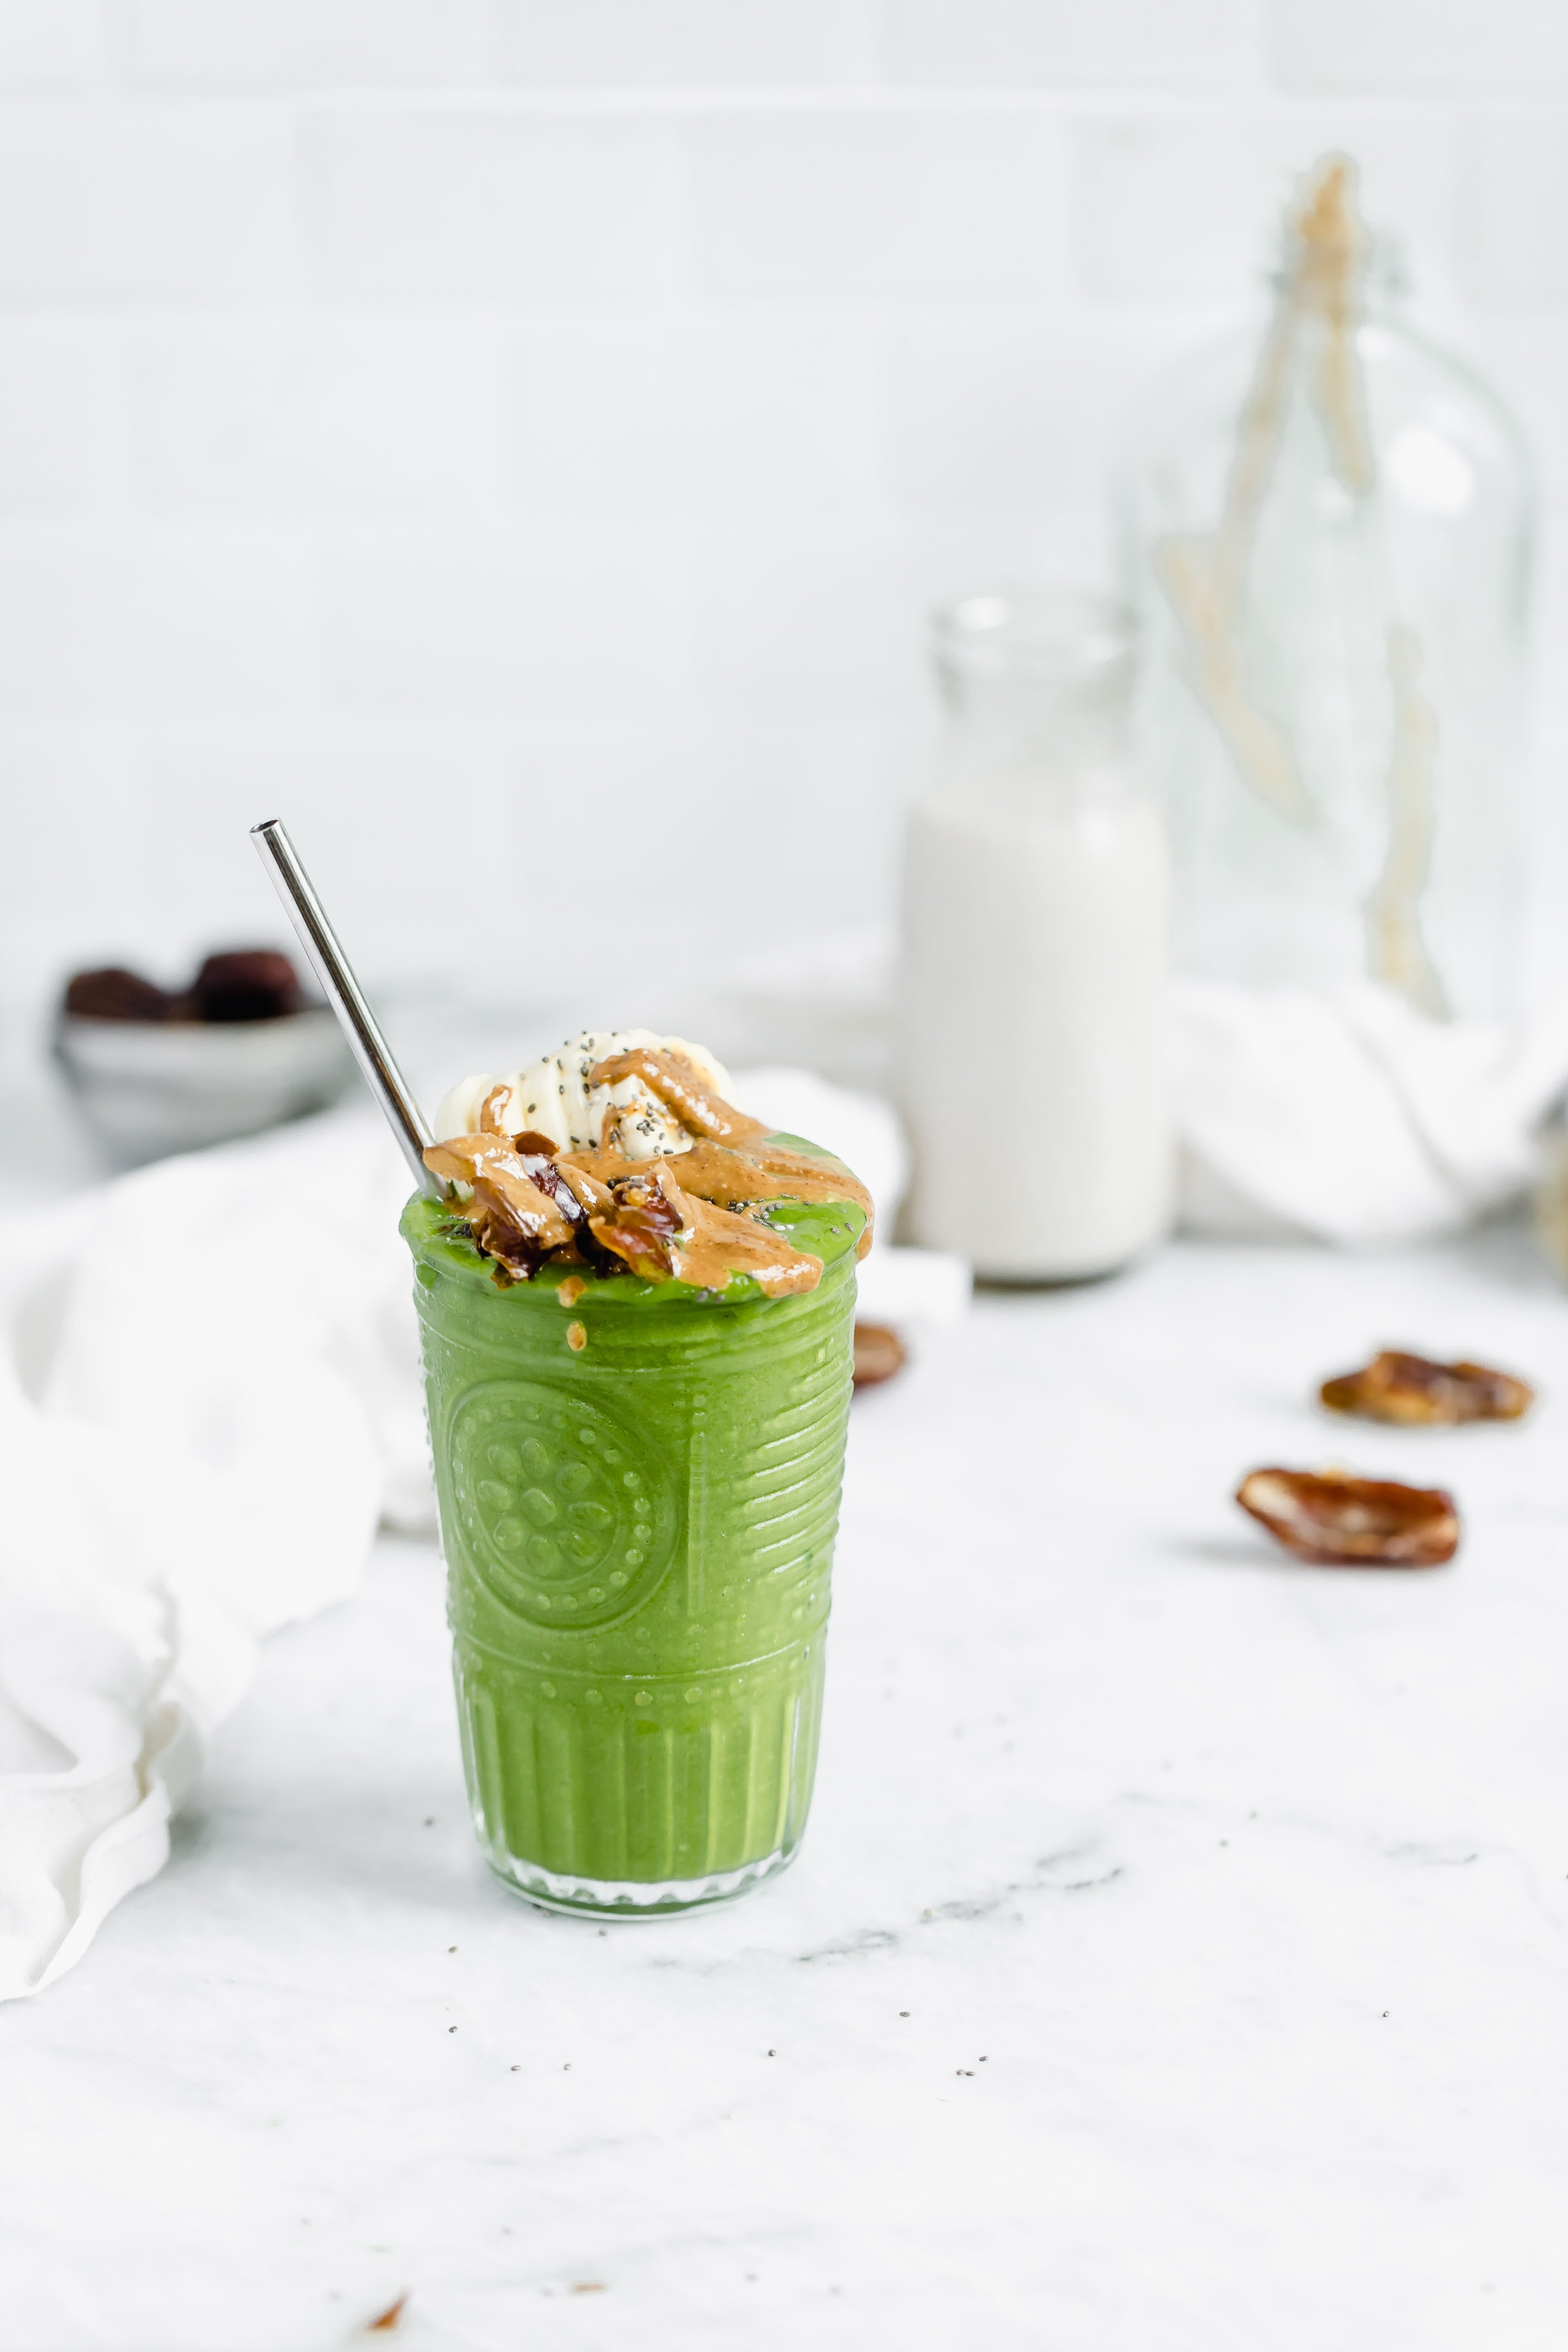 green smoothie topped with bananas, dates, almond butter, and chia seeds